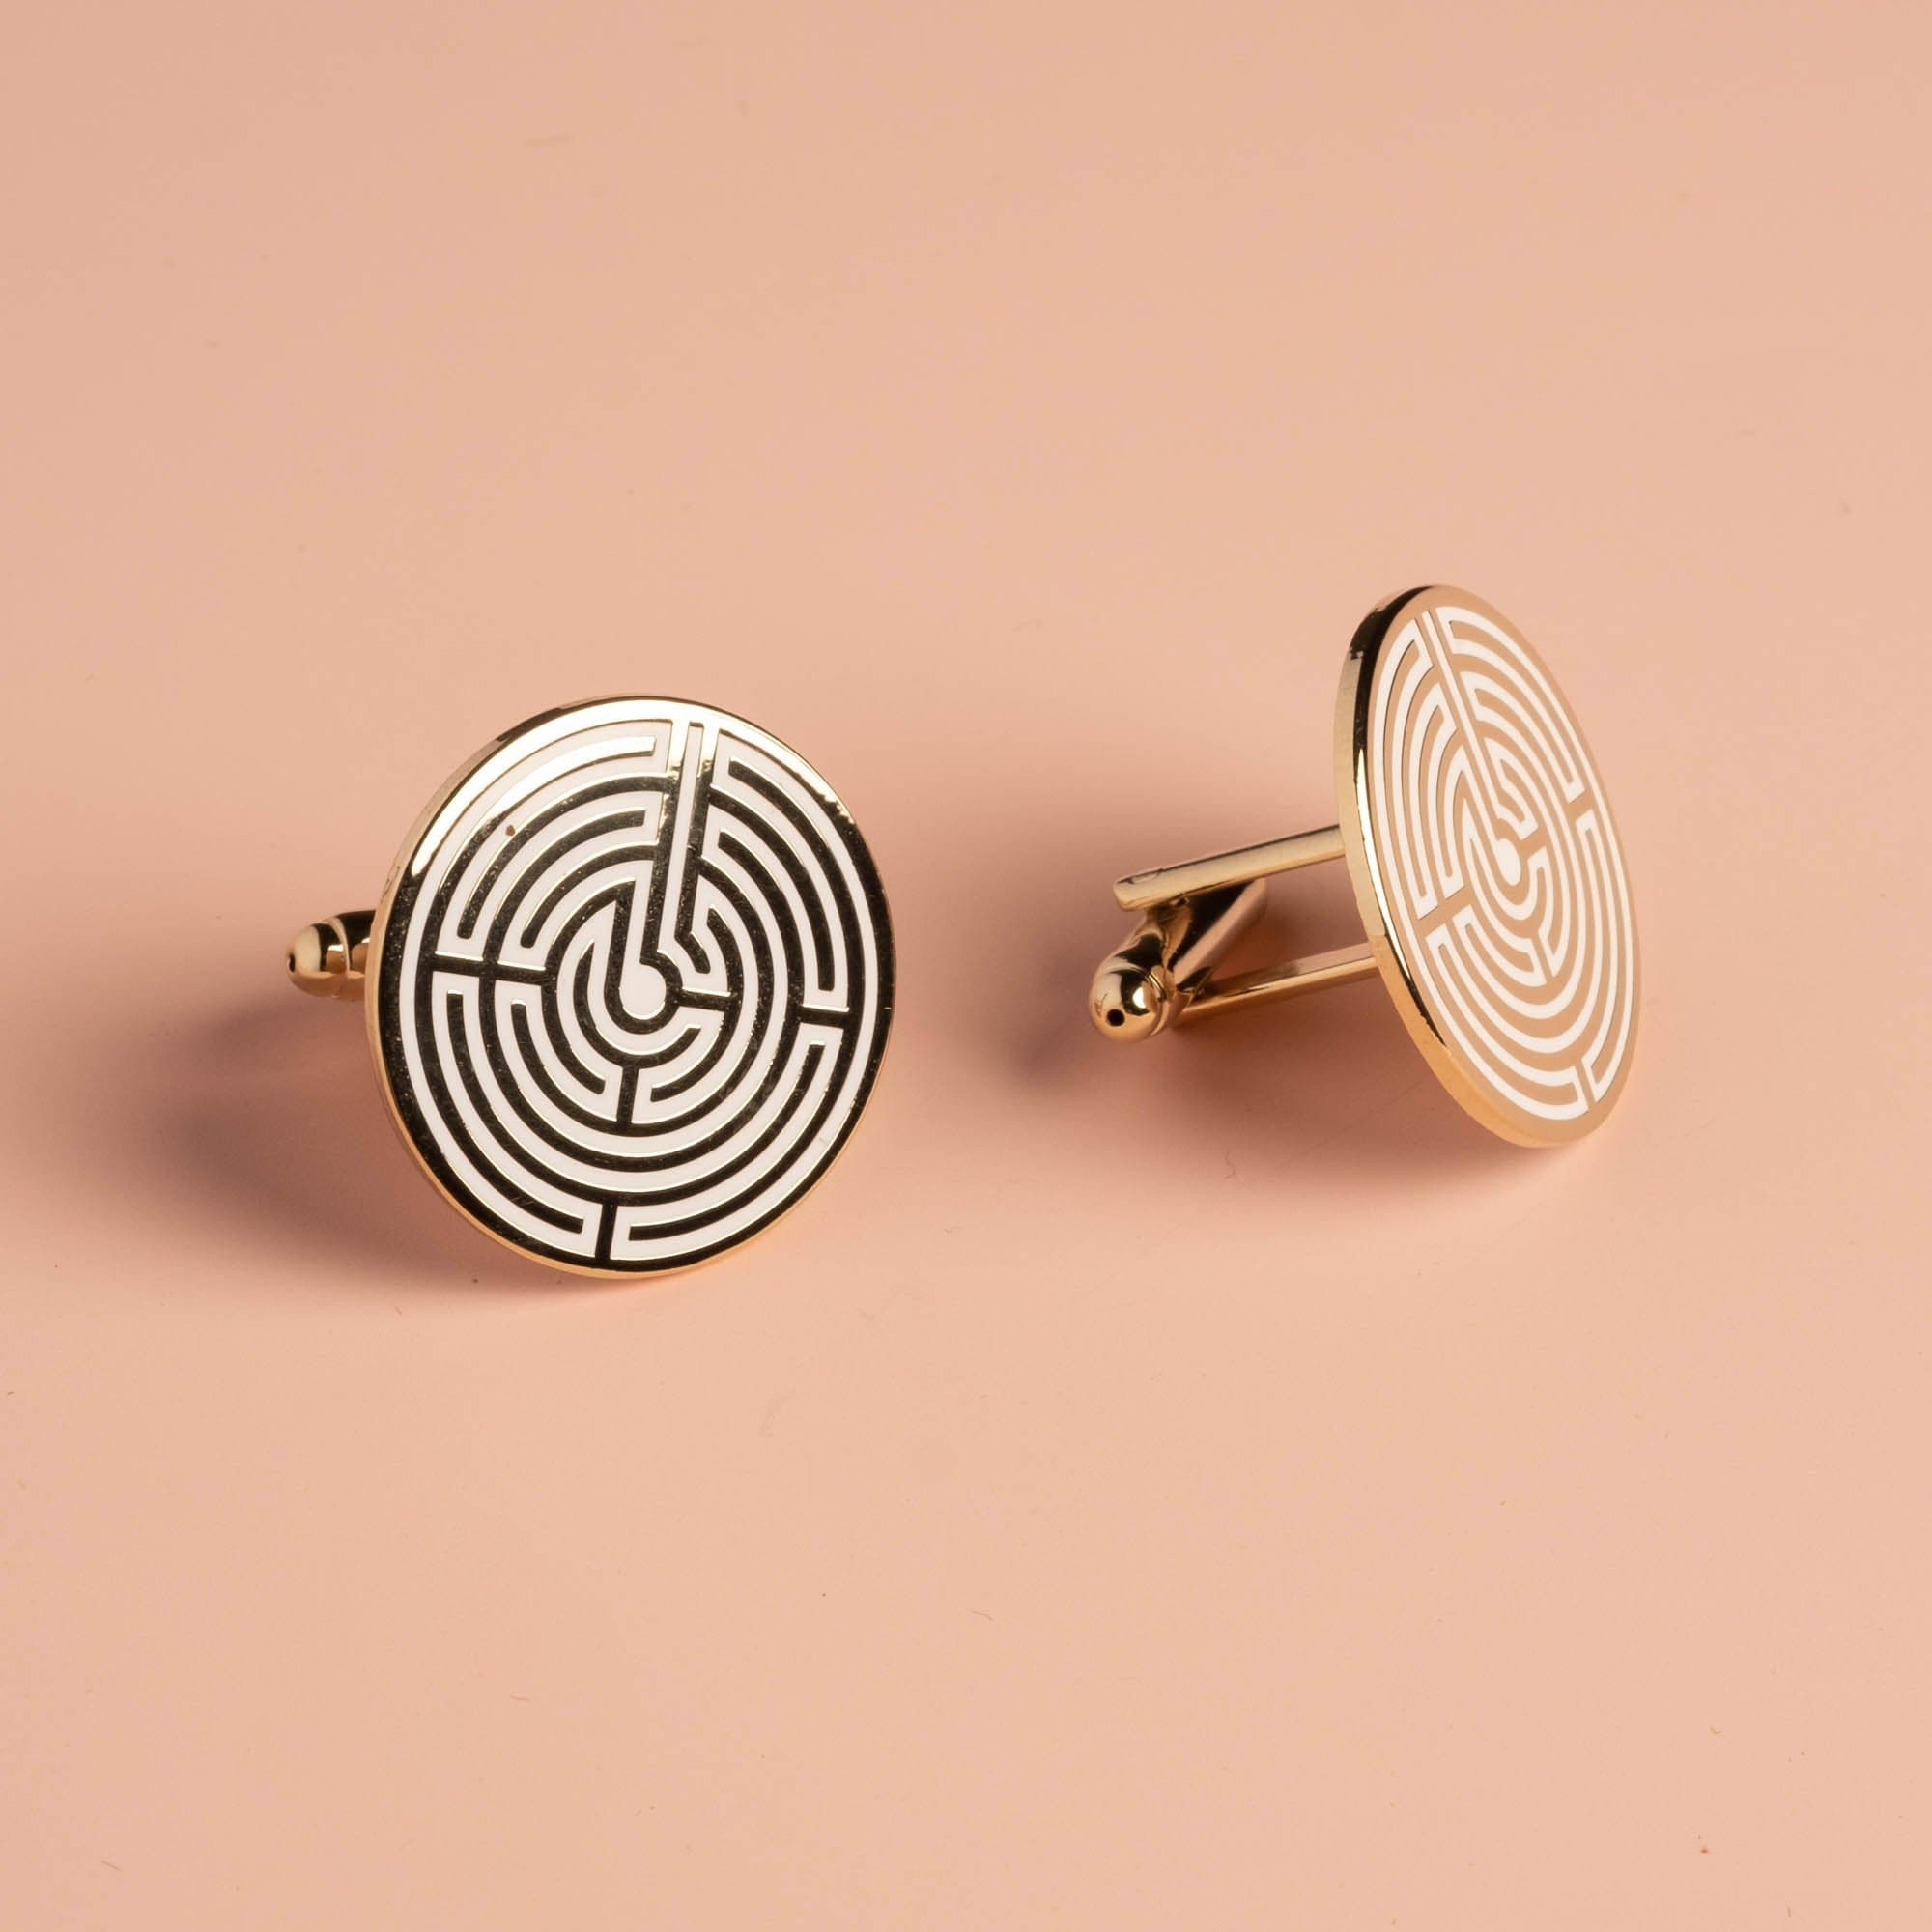 Grace Hopper Nanosecond Cufflinks